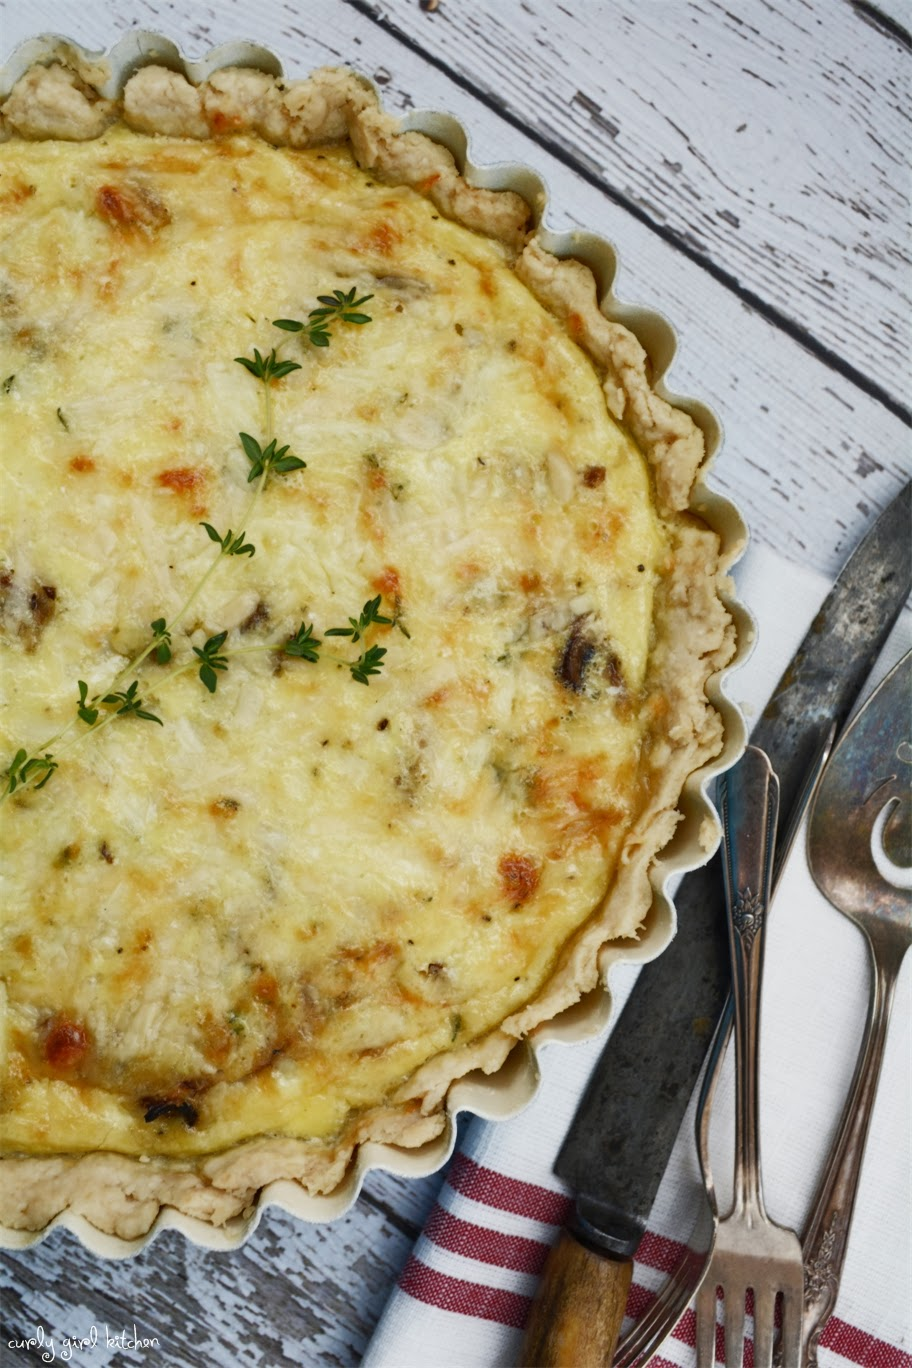 Curly Girl Kitchen: Caramelized Mushroom and Onion Quiche with White ...